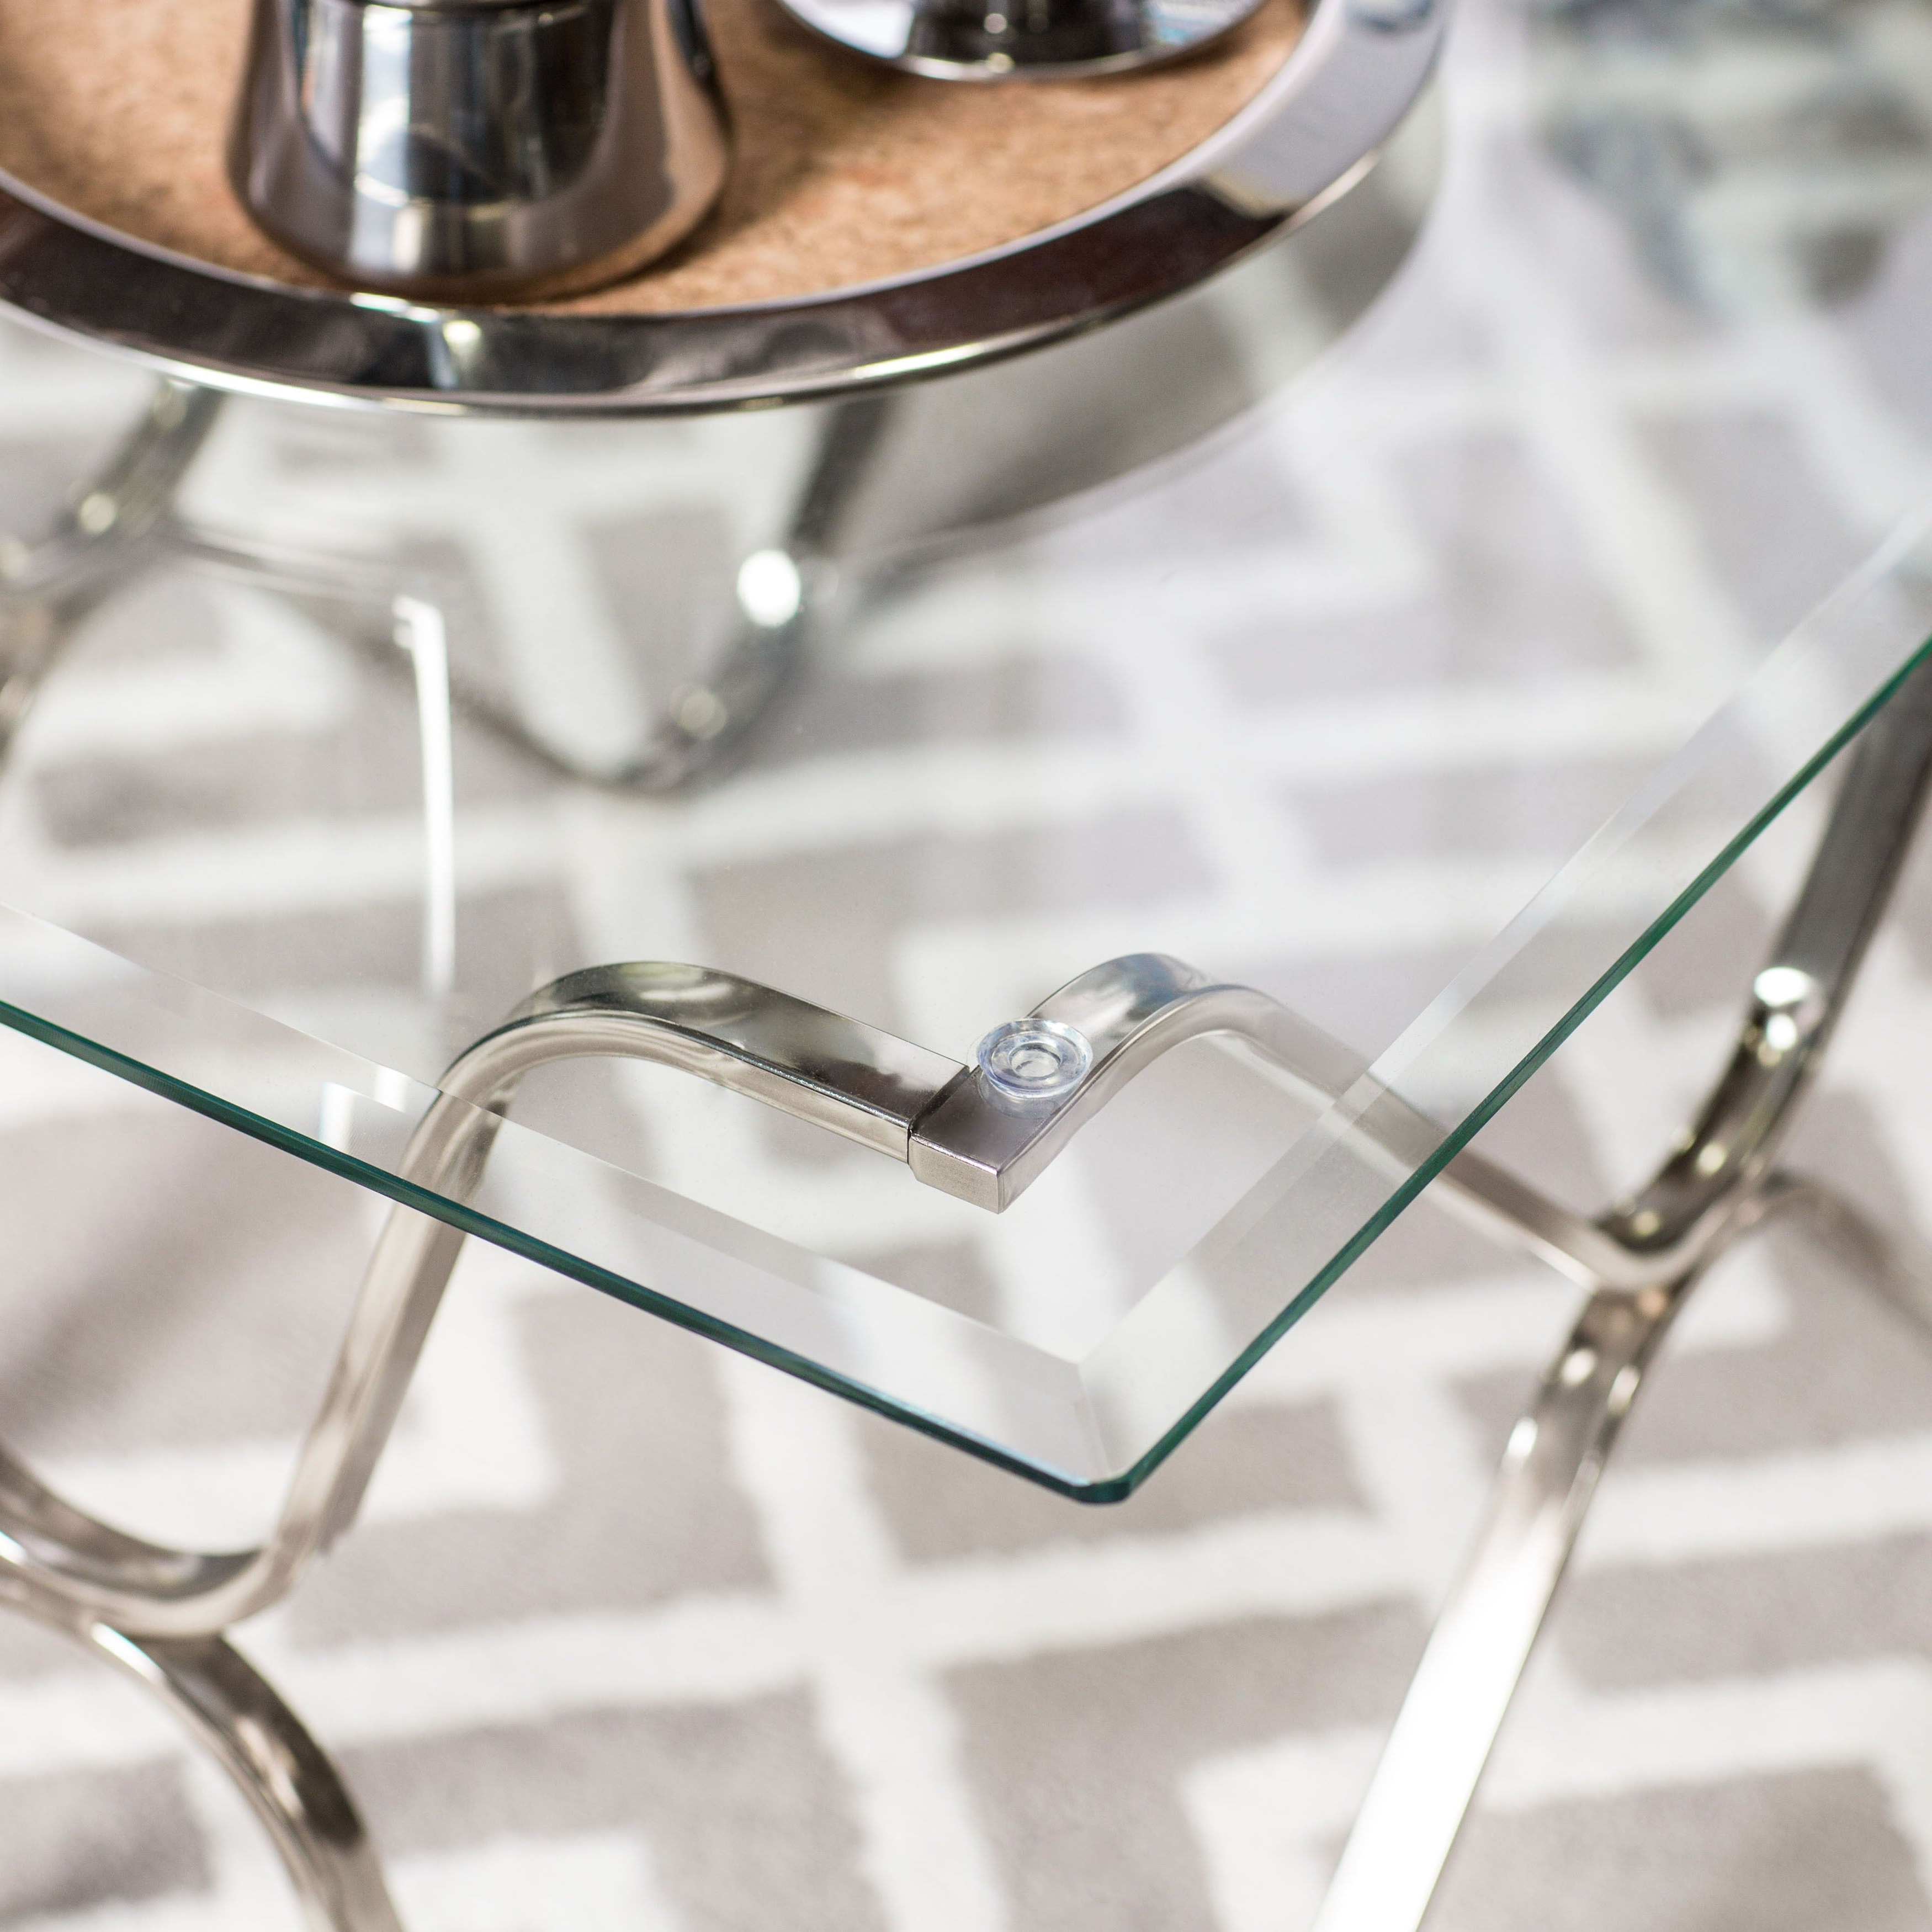 Furniture Of America Tellarie Contemporary Chrome Coffee Table – Silver Inside Most Up To Date Furniture Of America Tellarie Contemporary Chrome Coffee Tables (View 9 of 20)